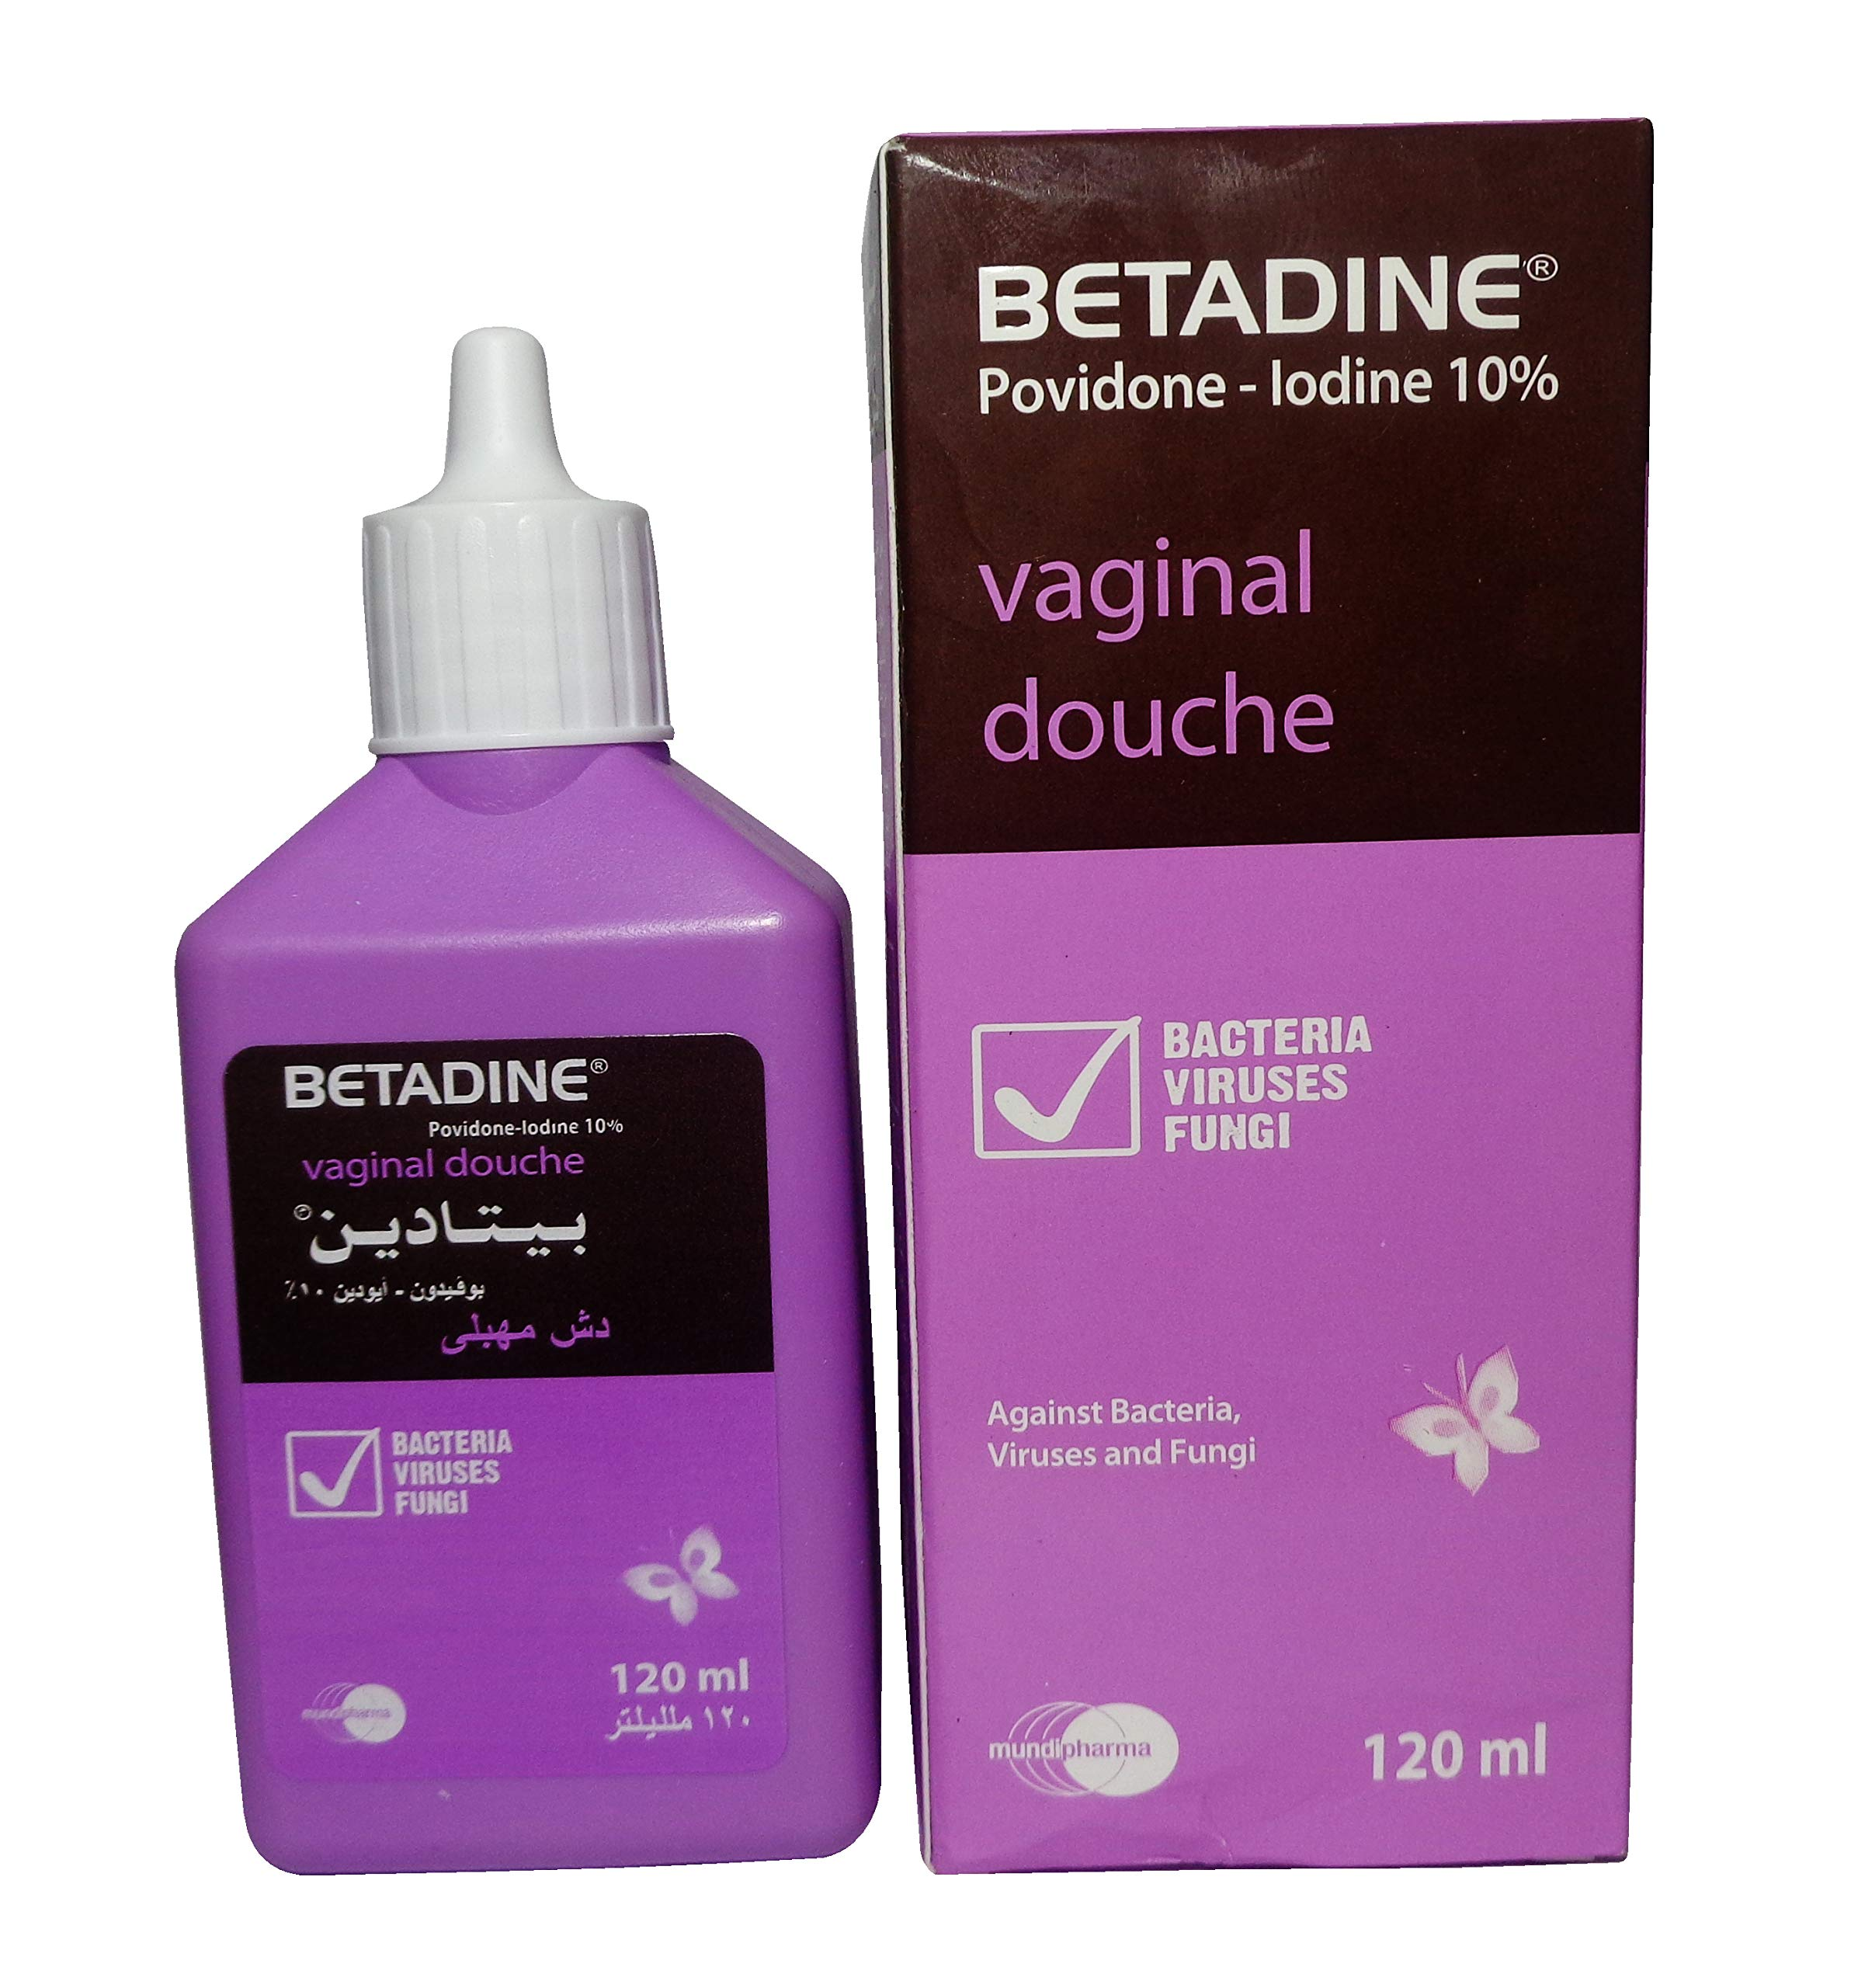 BETADINE Vaginal Douche Povidone-Iodine 10% for Women Intimate Care 120 ml (2 Packs / 240 ml) by Betadine